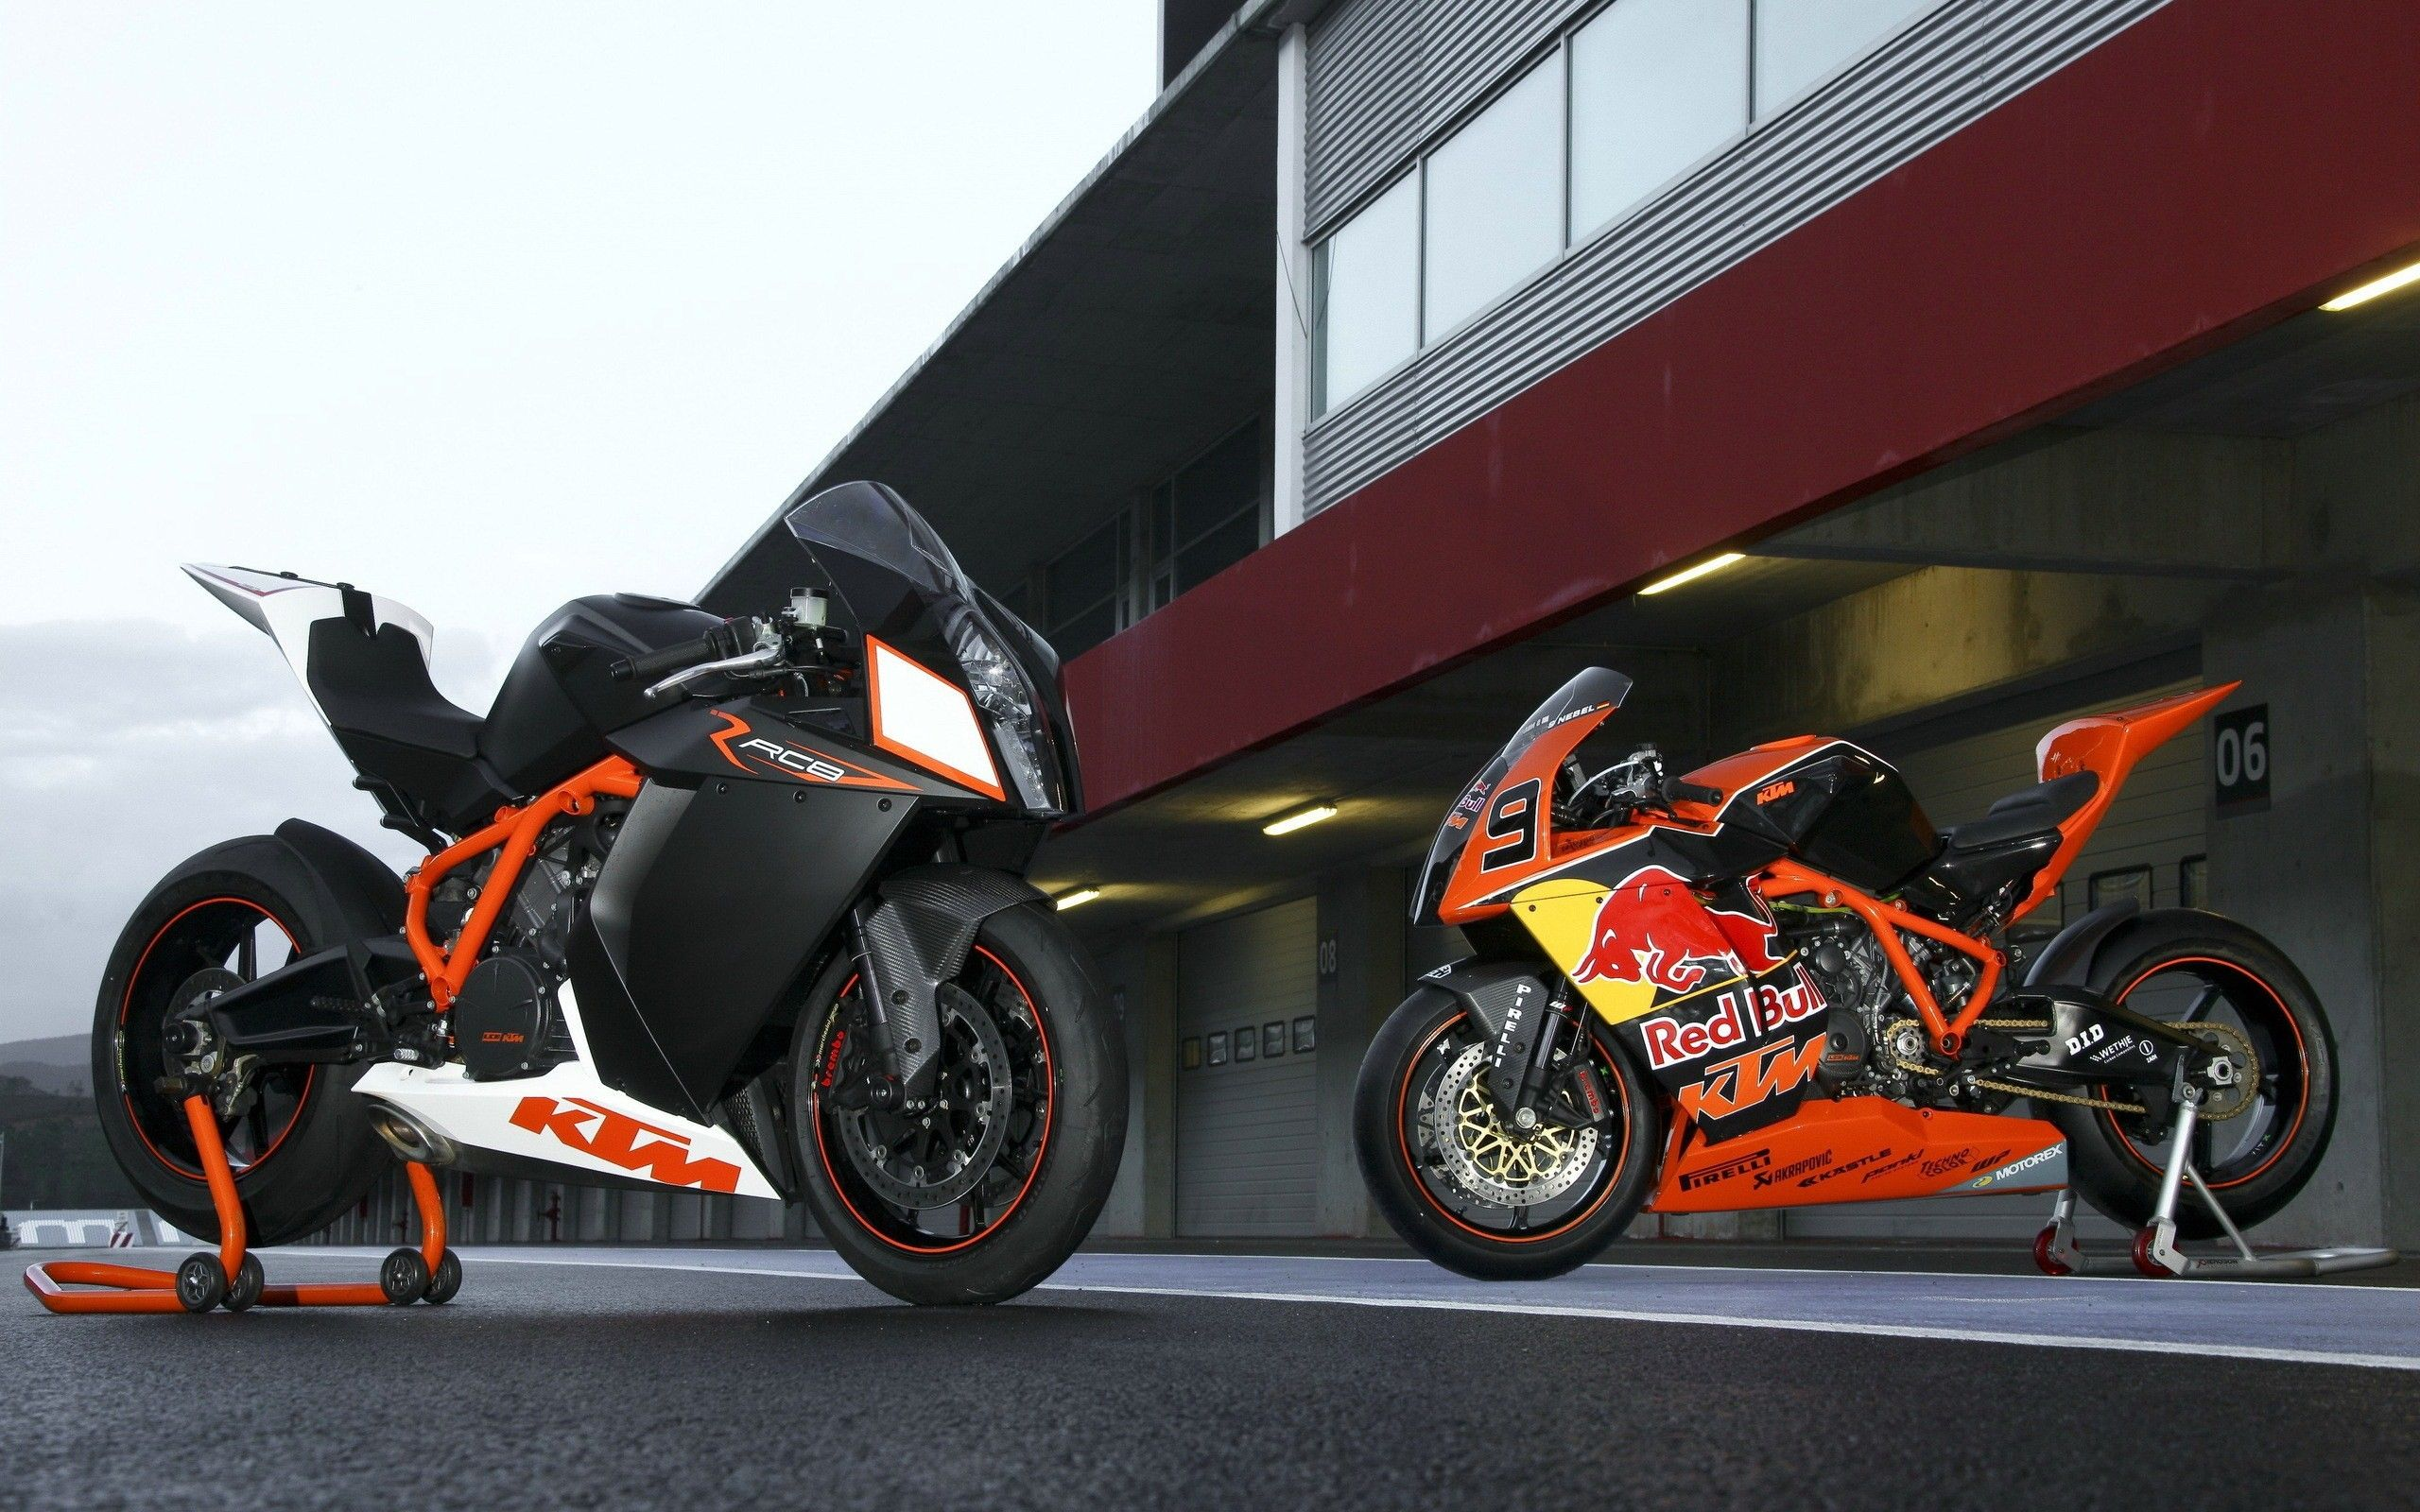 2560x1600 - KTM RC8 Wallpapers 24